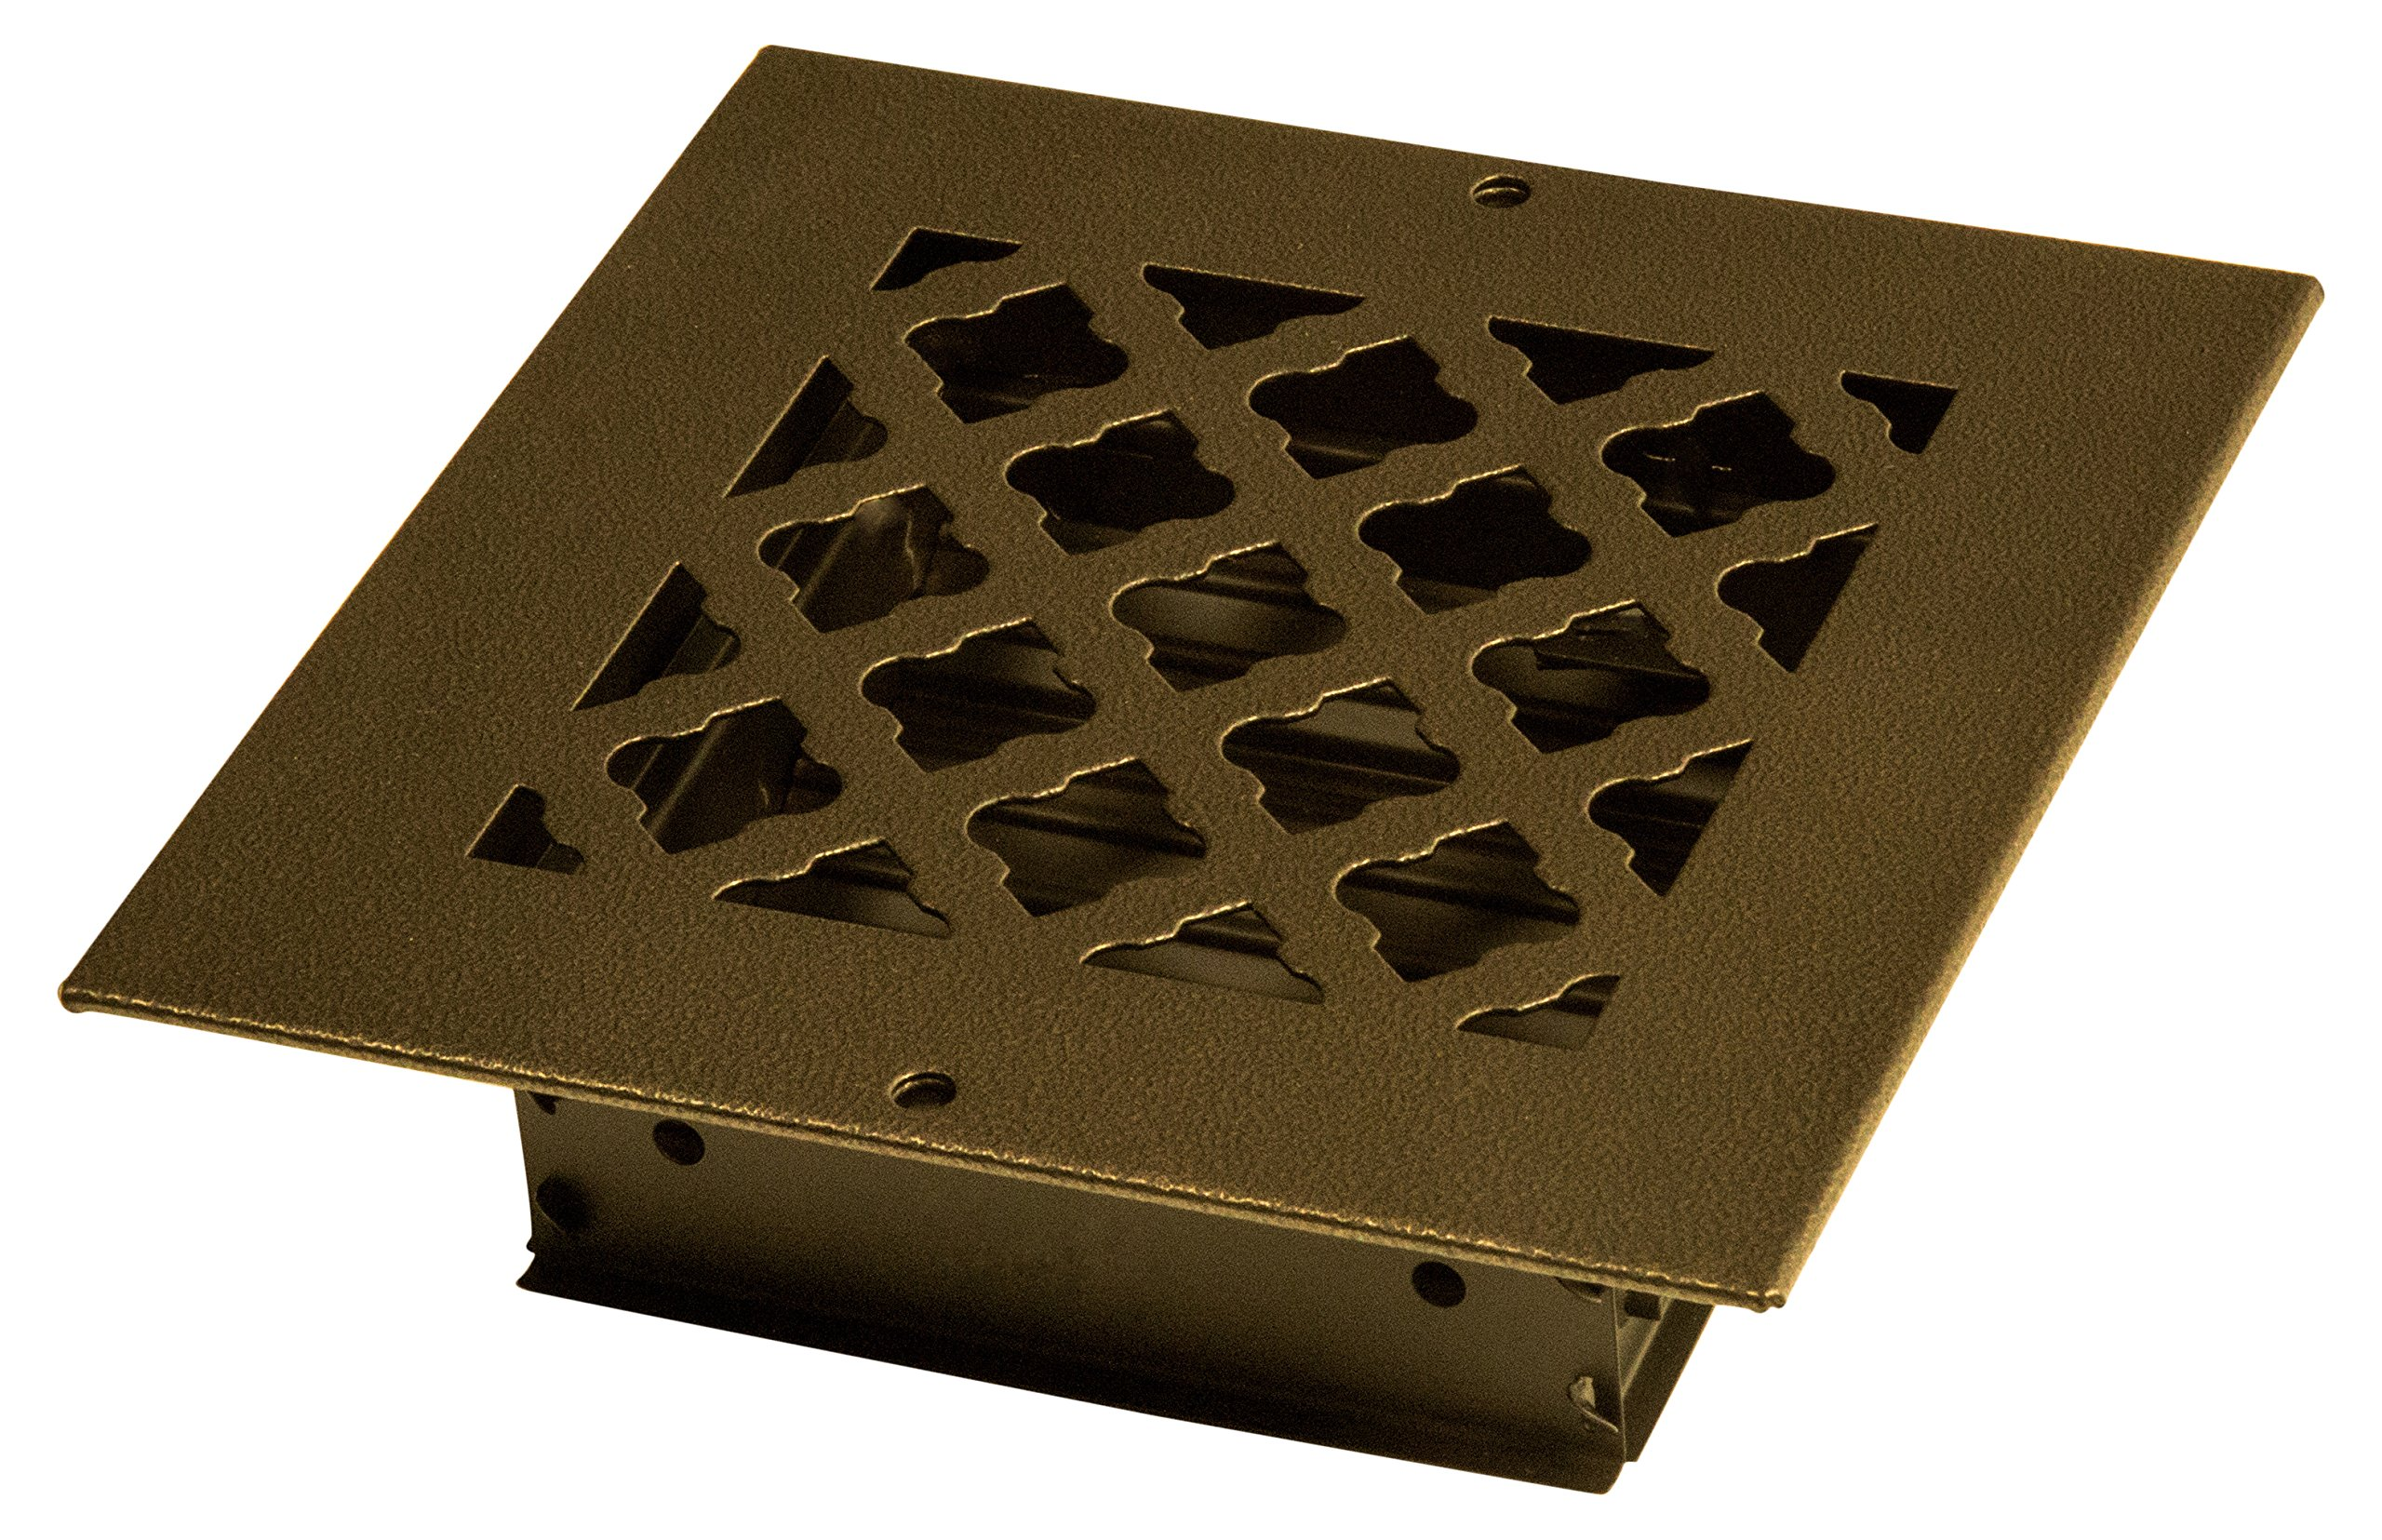 SteelCrest BTU6X6SORBH Bronze Series Designer Wall/Ceiling Vent Cover, with Air-Volume Damper, and Mounting Screws, Oil Rubbed Bronze